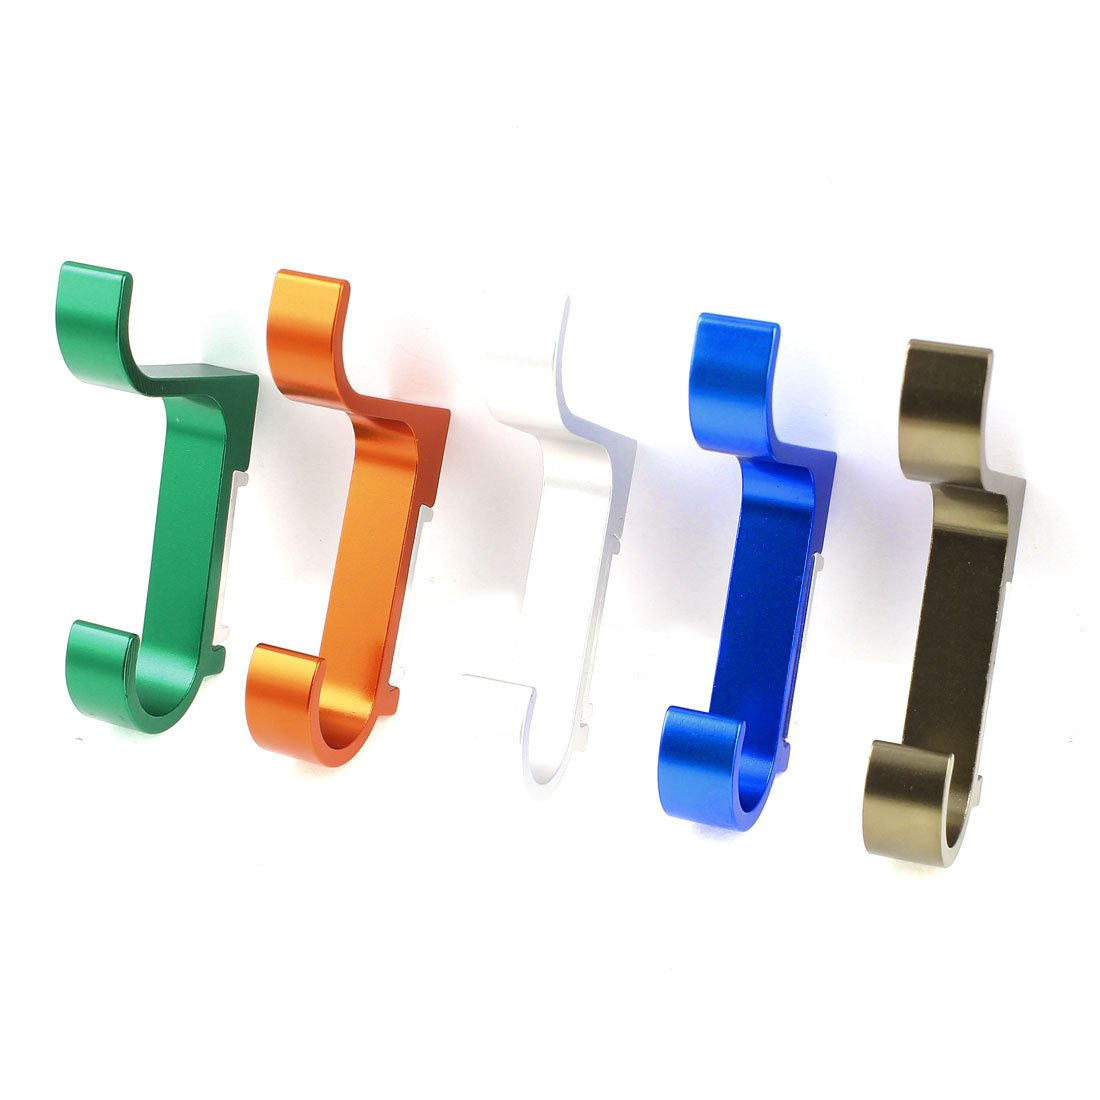 5 x Multicolor Aluminum Hat Coat Clothes Holder Robe Hooks Wall Hanger